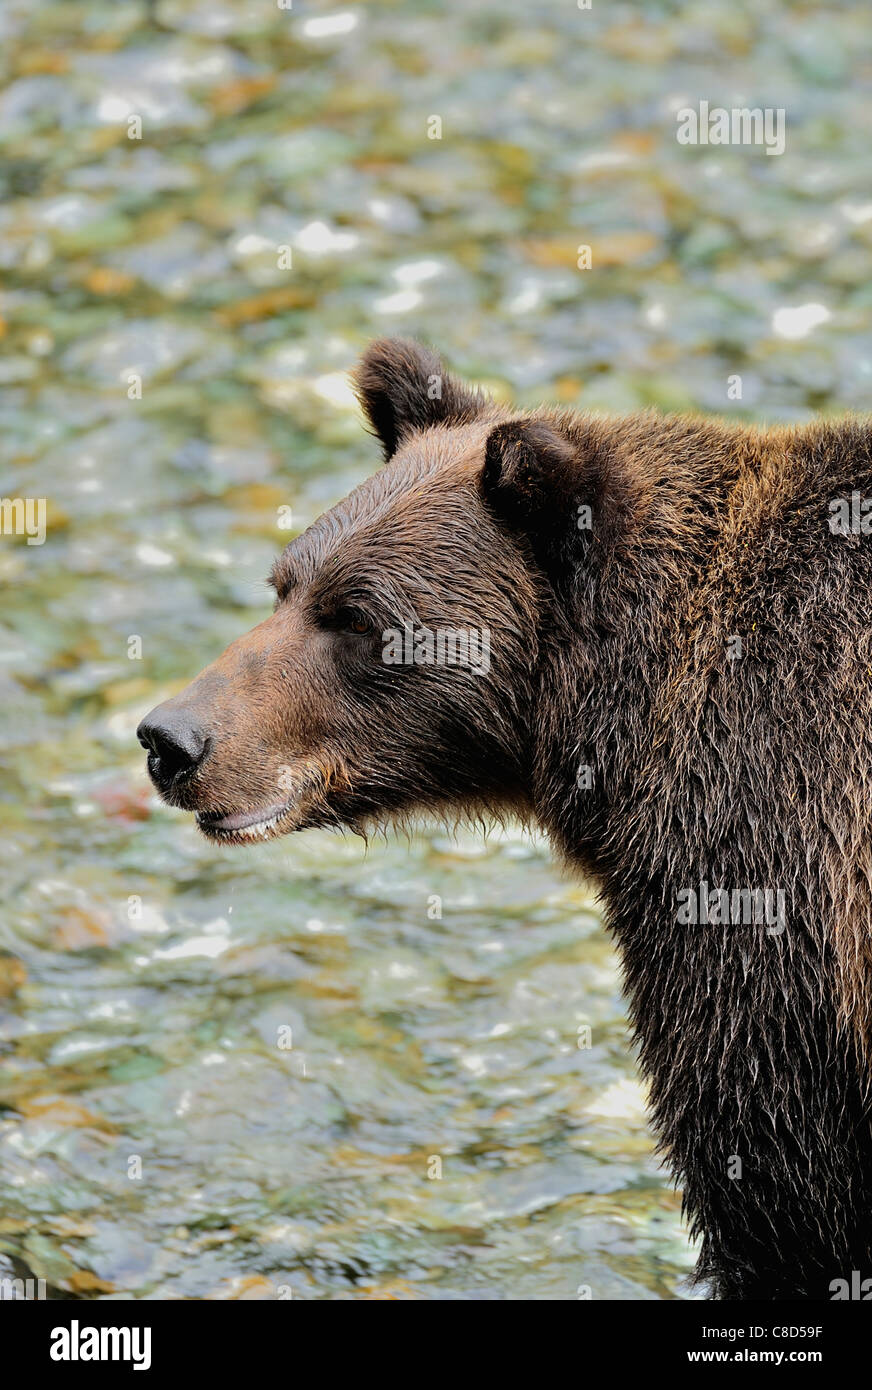 A grizzly scans the water of a clear running stream for spawning salmon. - Stock Image